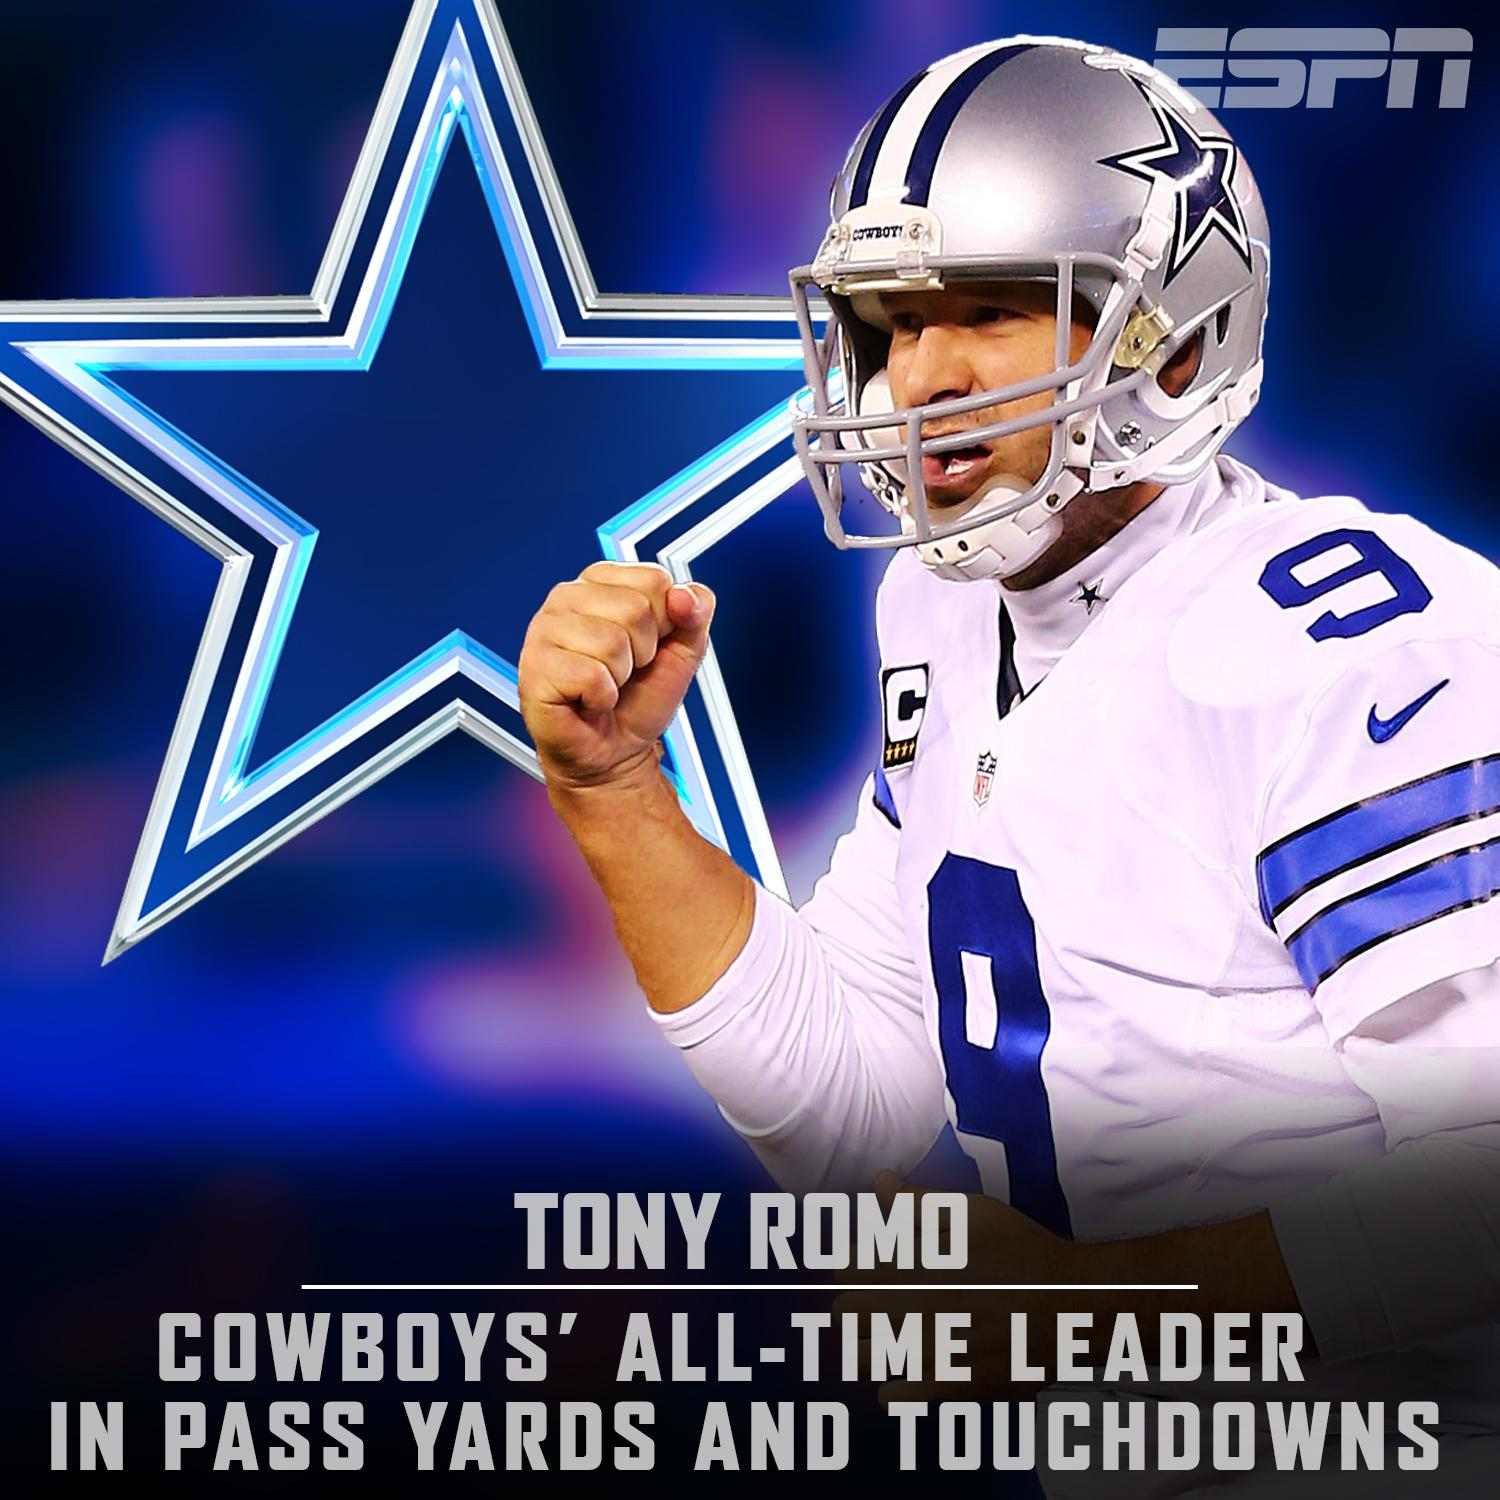 The Tony Romo era will officially be coming to an end in Dallas, but it was good one. https://t.co/bxuu1zzrAH